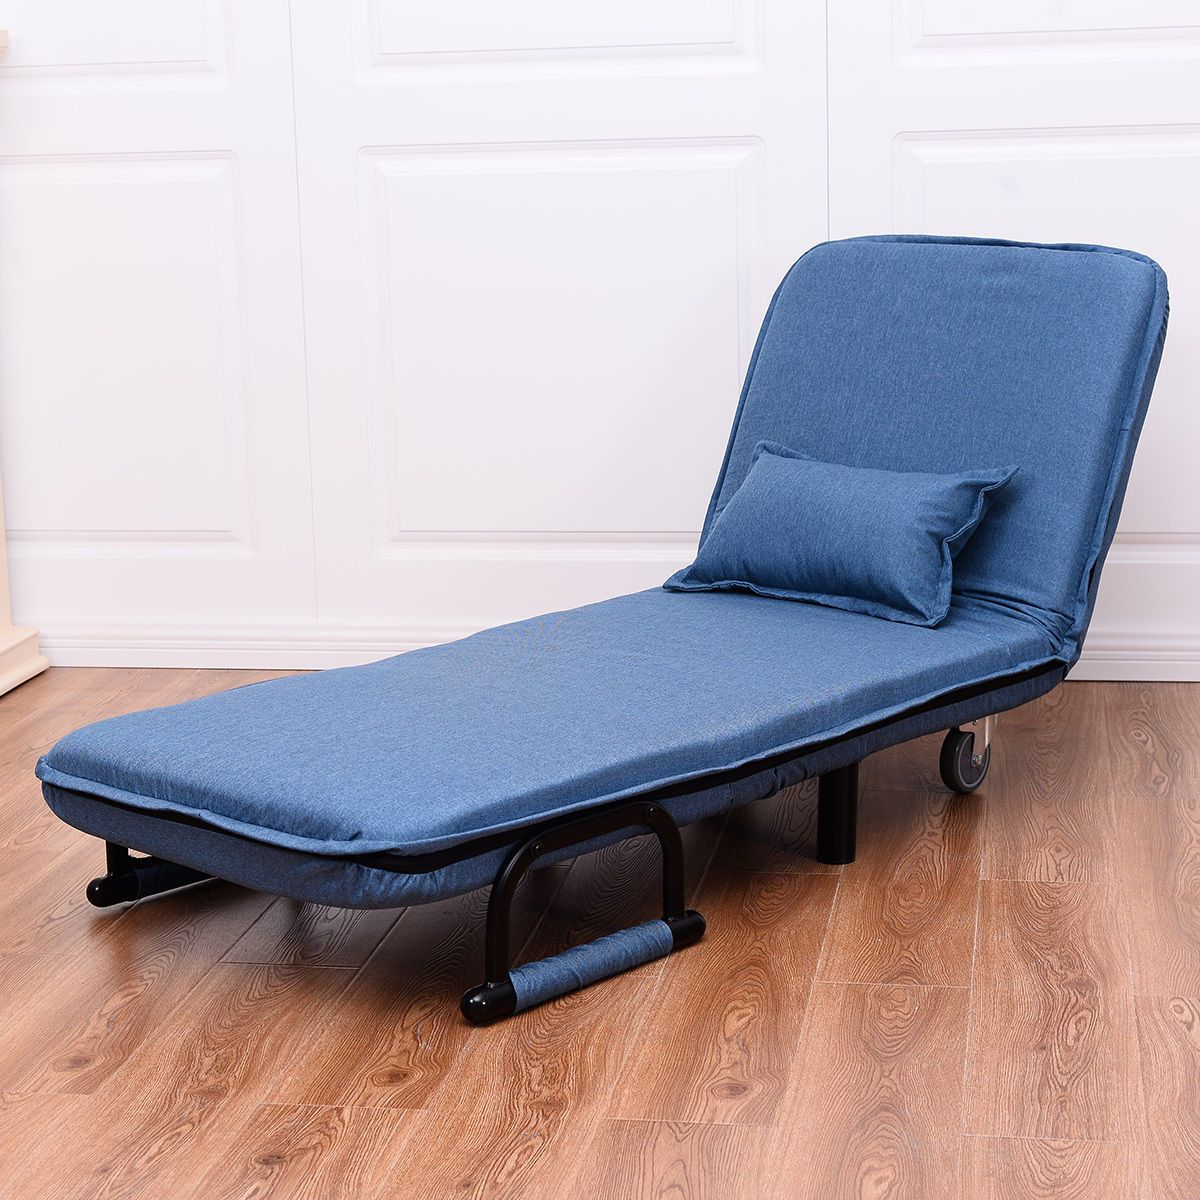 Convertible Folding Leisure Recliner Sofa Bed in 2020